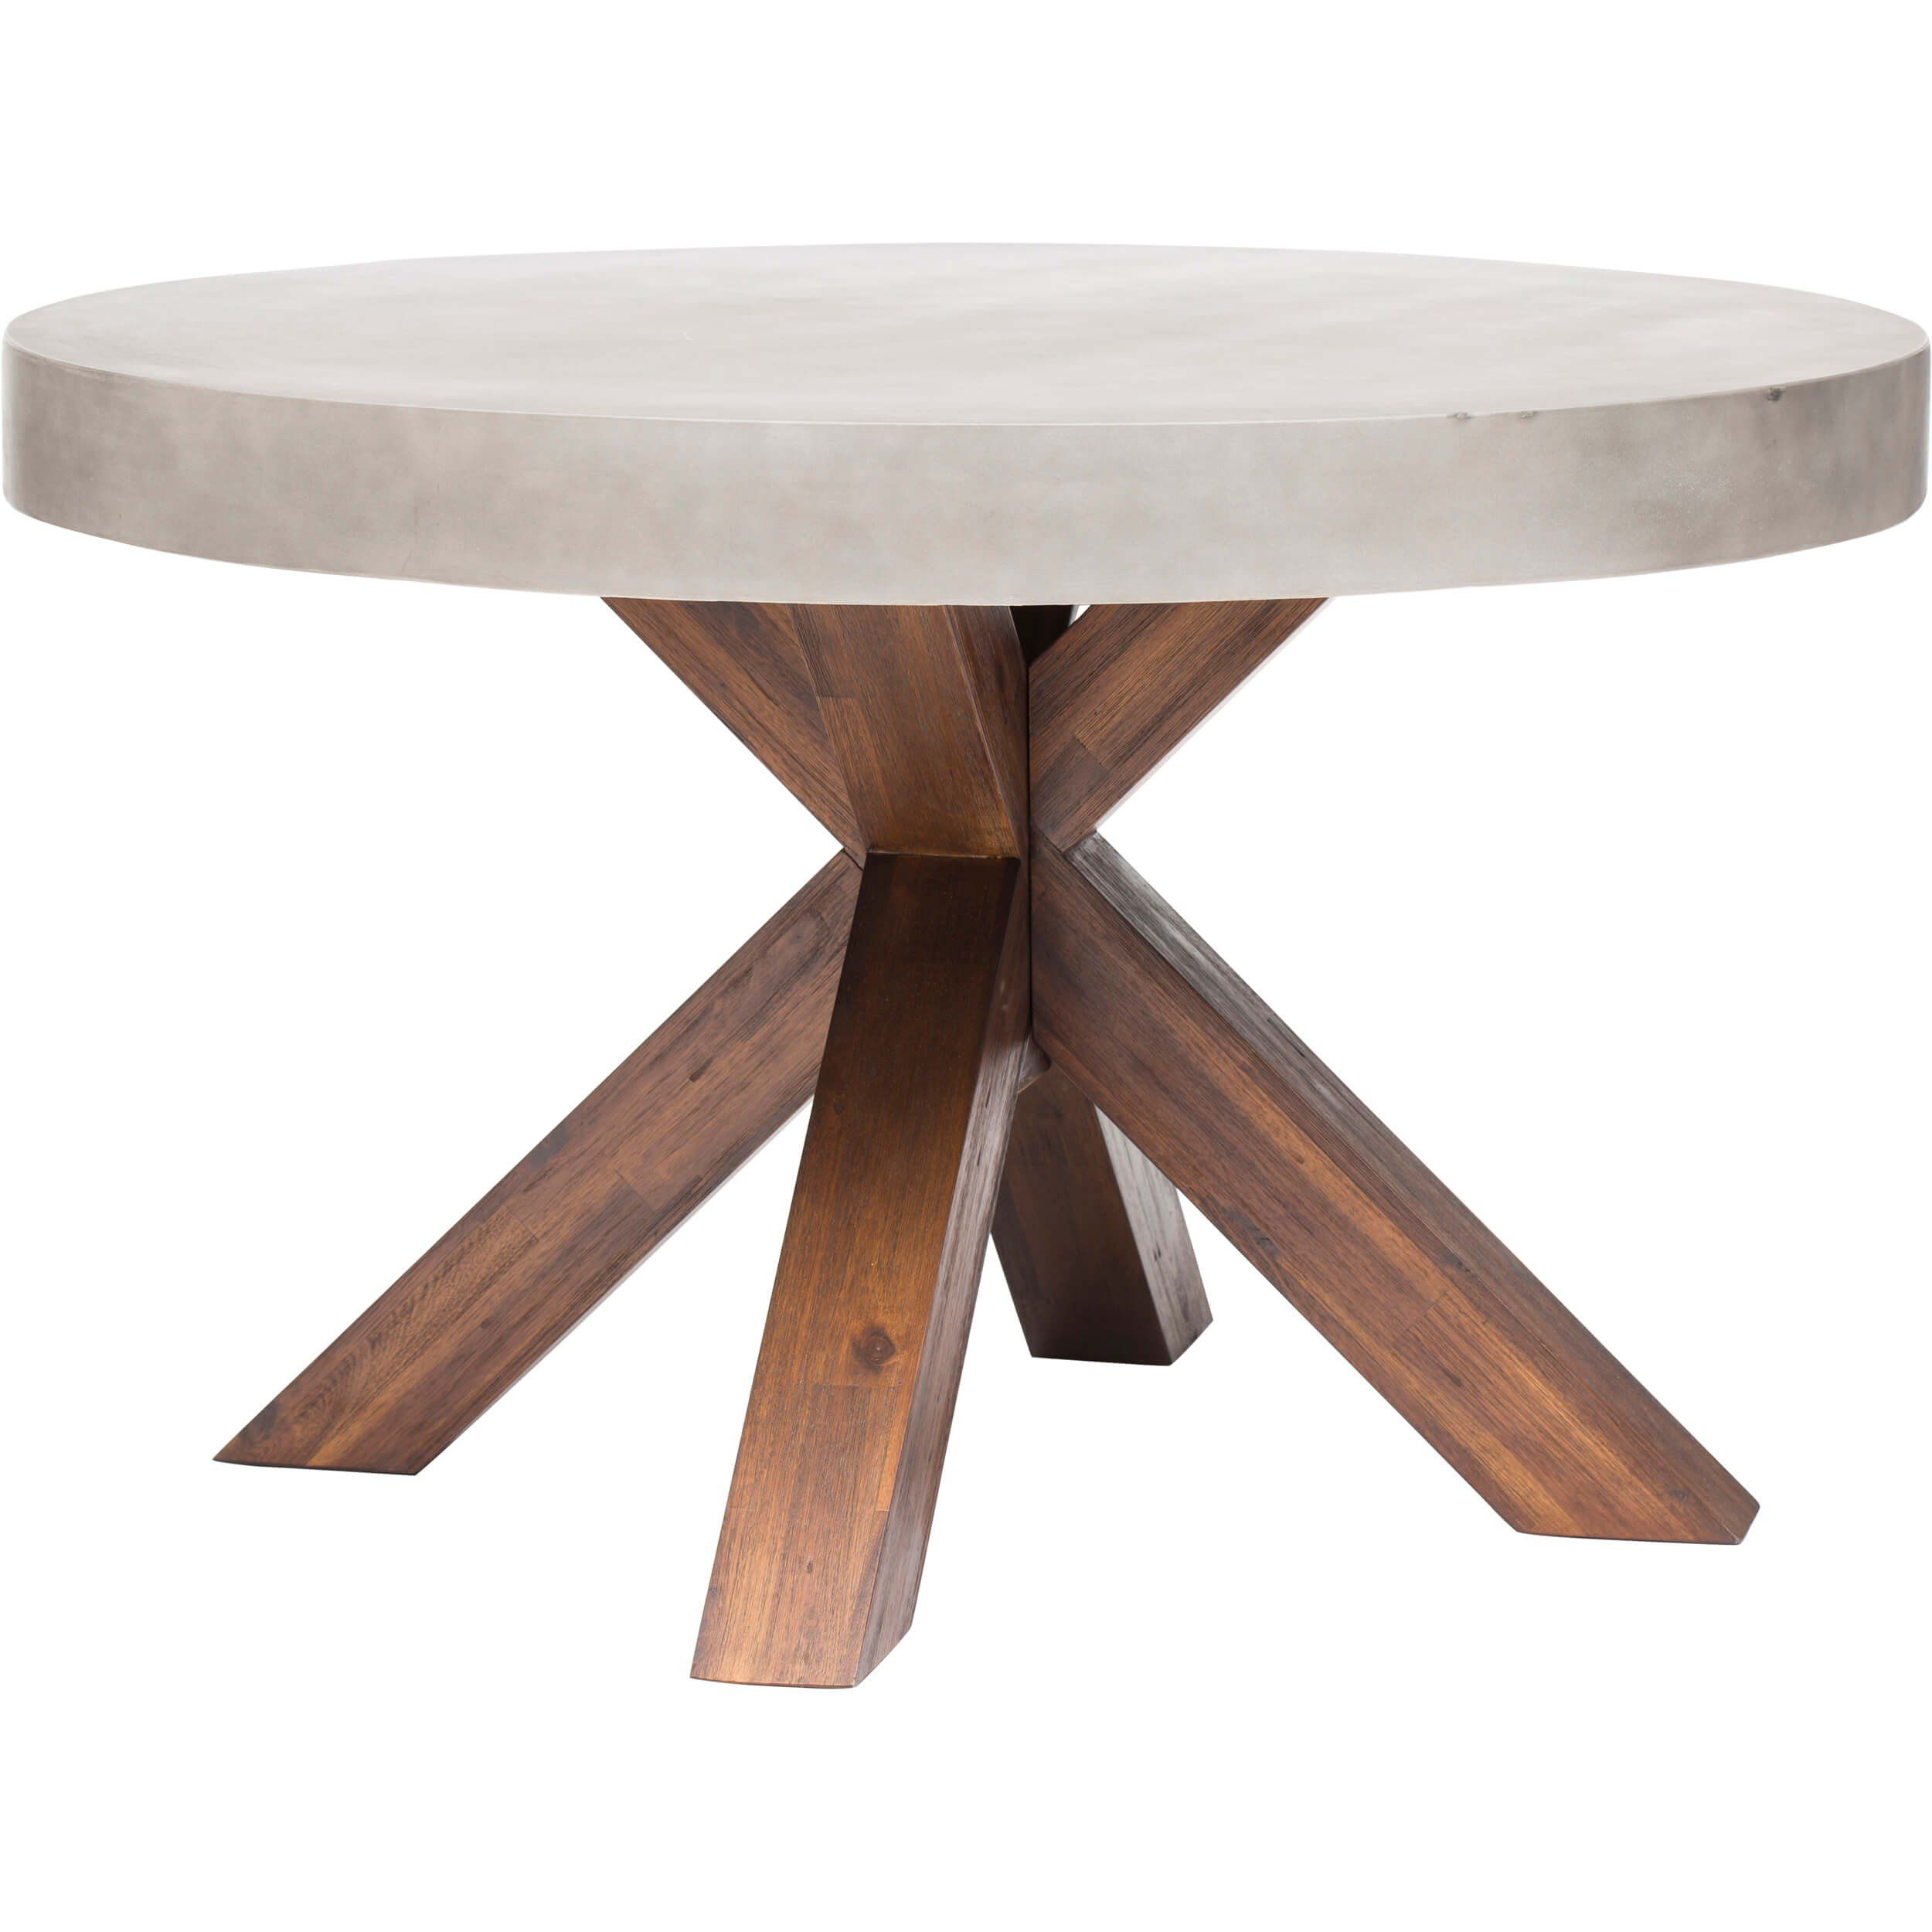 Warwick Round Dining Table Concrete Dining Table Round Dining Table Dining Table